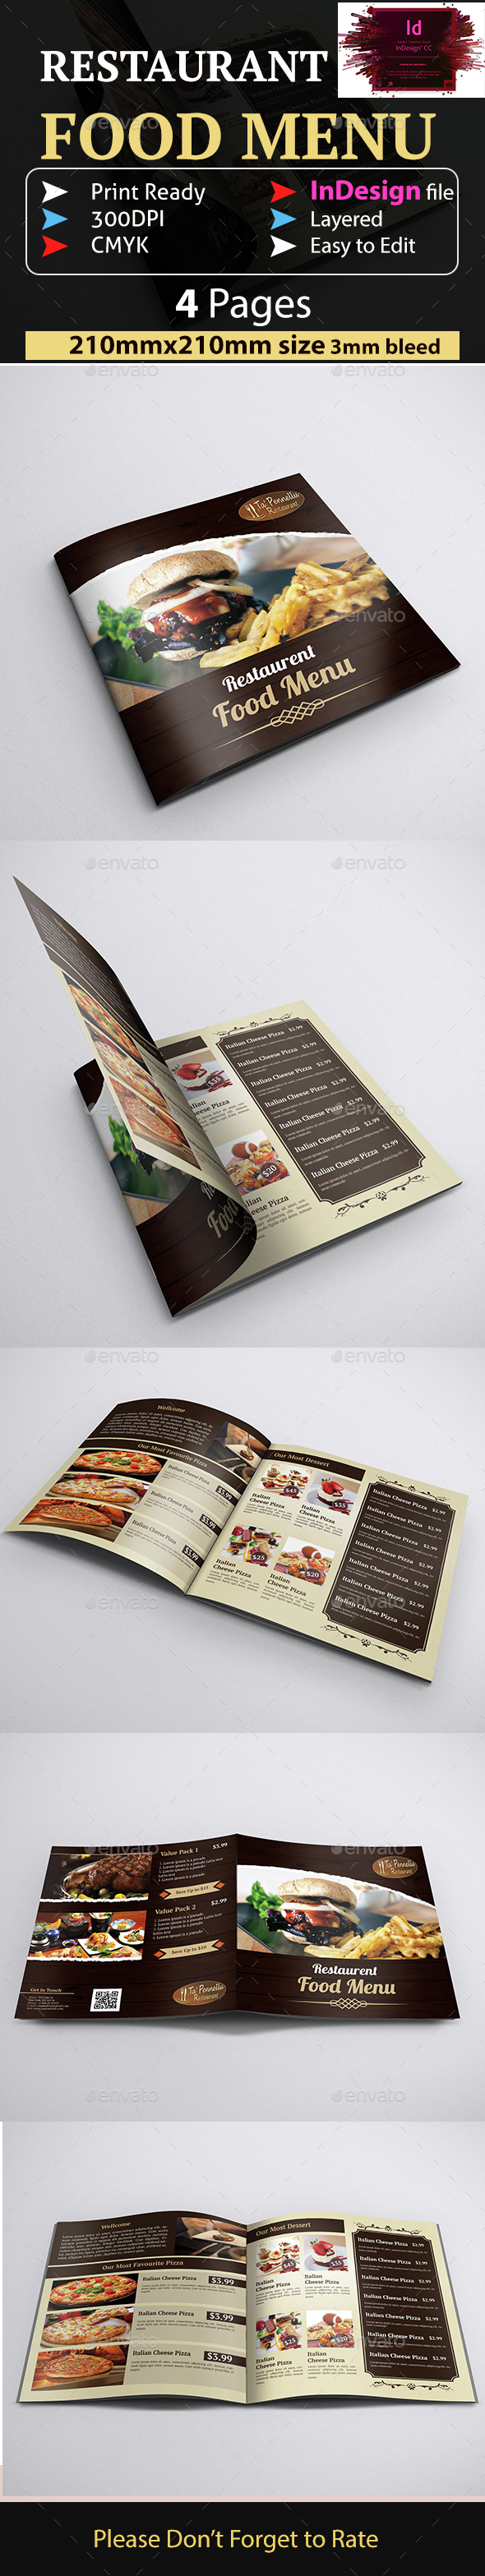 Restaurant Food Menu - Restaurant Flyers